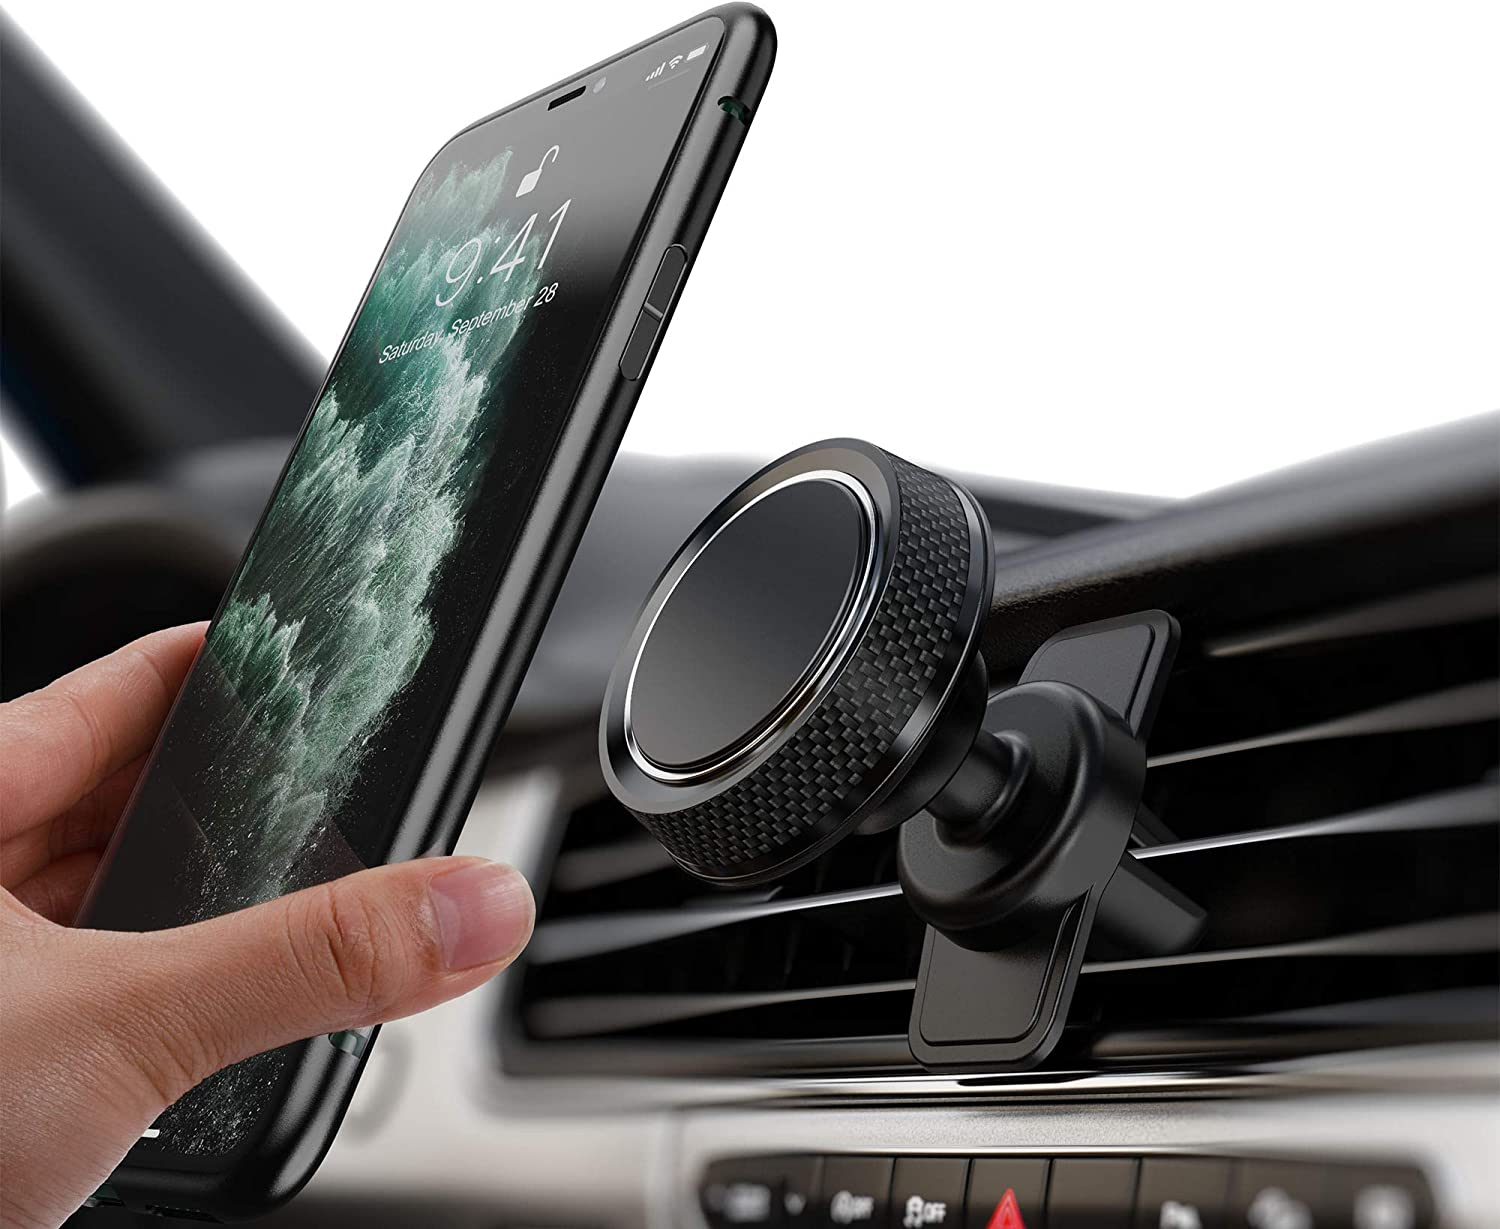 Huawei and More Circular-Silver Magnetic Cell Phone Holder for Car,Car Phone Holder 360/° Rotation from Dashboard Universal Magnetic Car Mount for Cell Phone GPS Apple iPhone,Samsung Galaxy HTC,LG